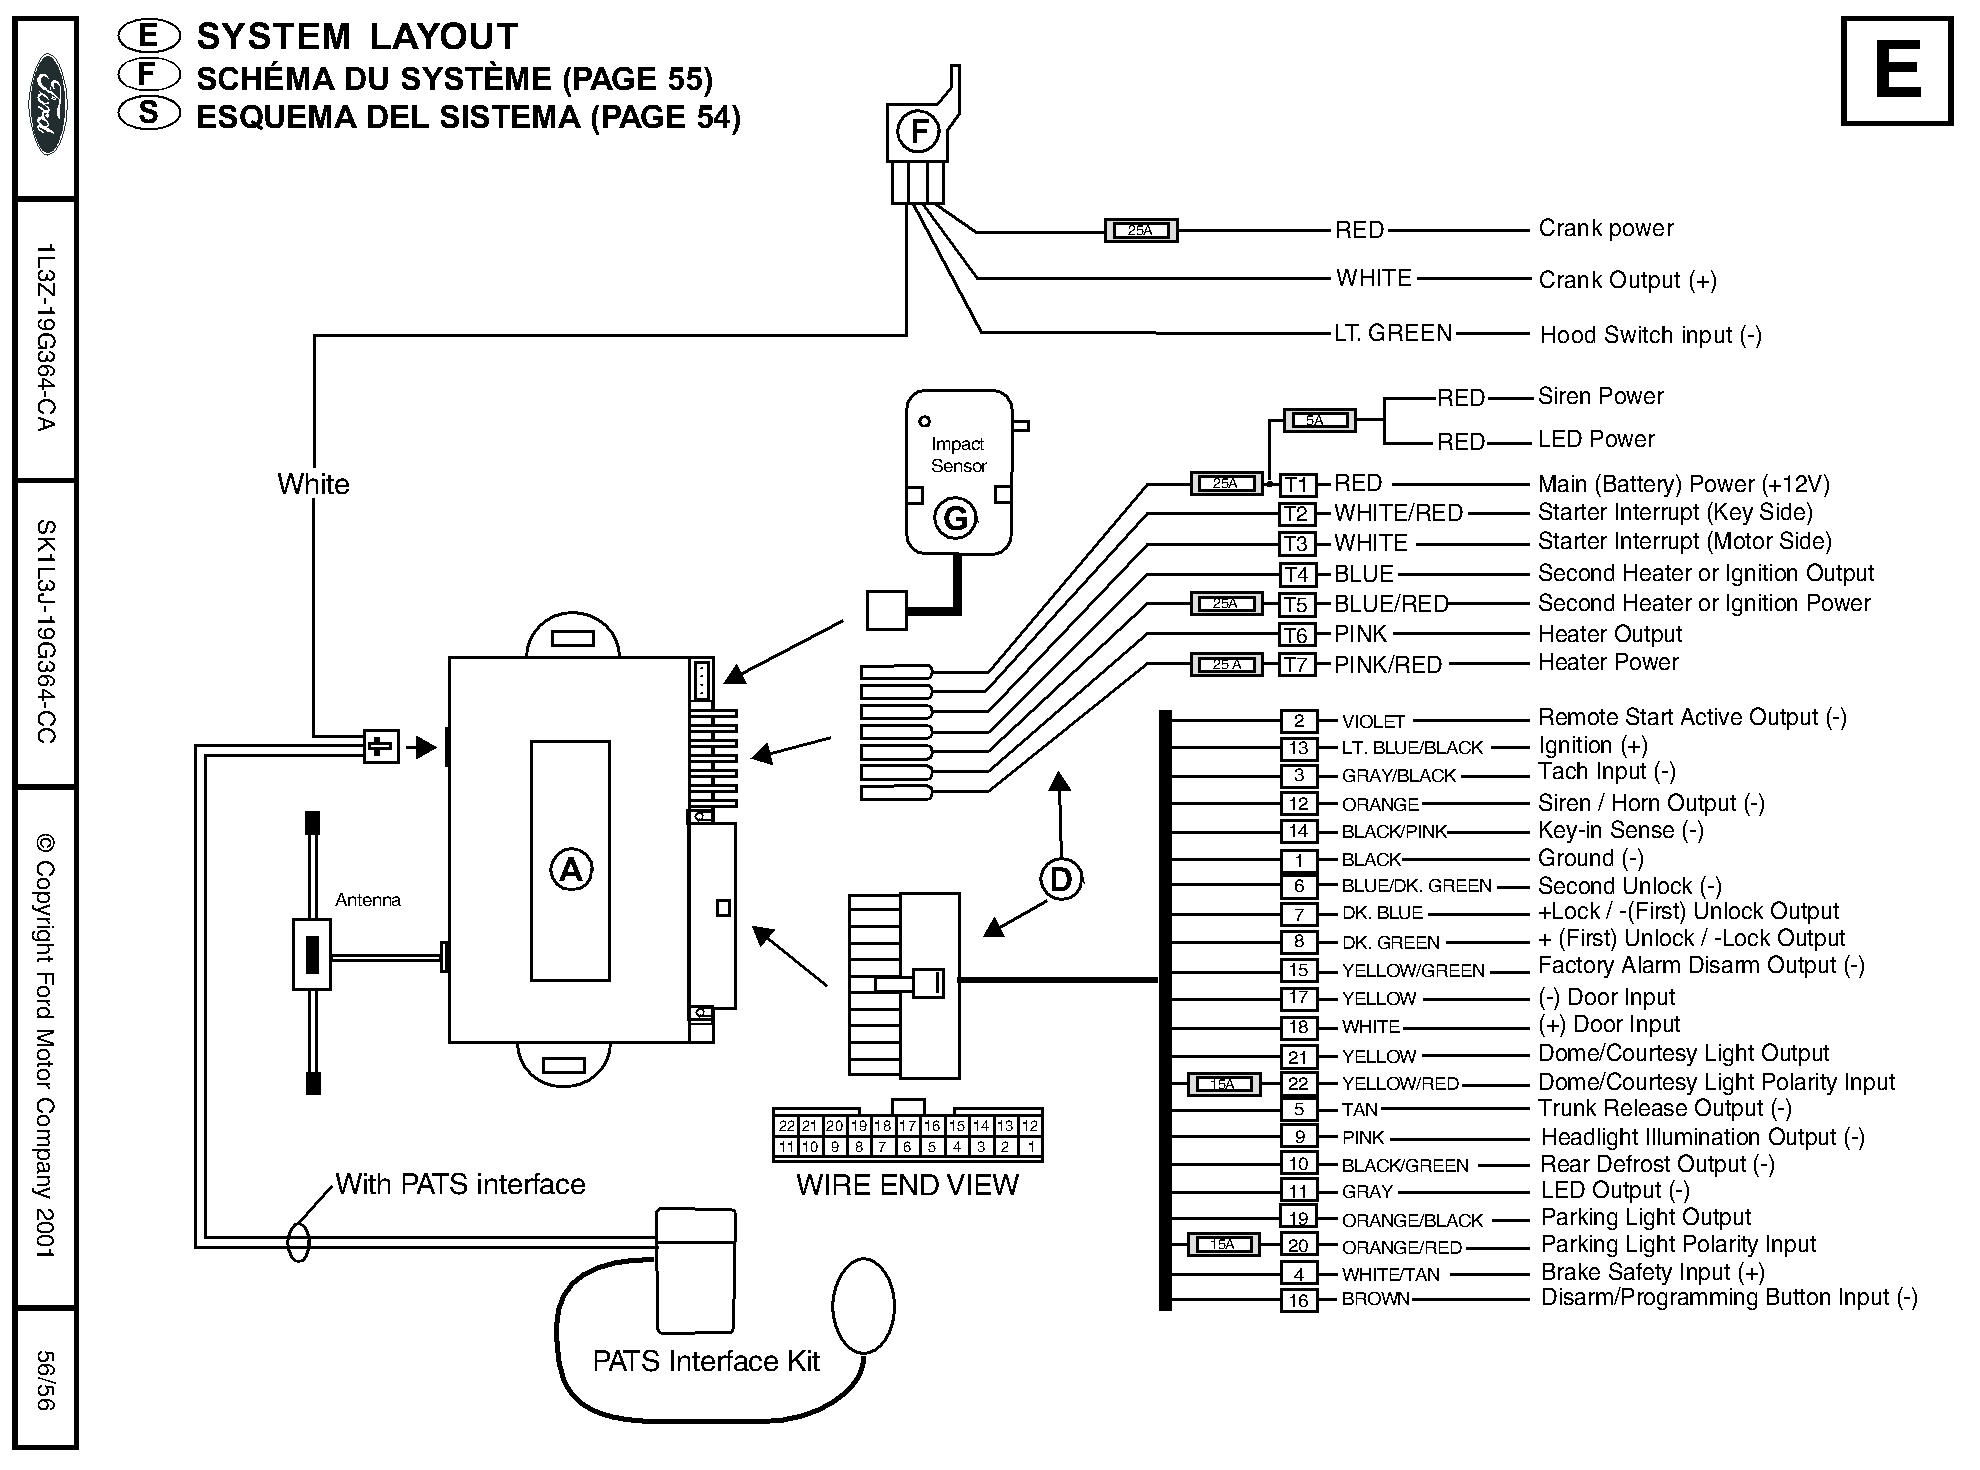 95 jeep wrangler engine wiring harness with Index on 1995 Jeep Wrangler Yj Wiring Diagram furthermore 2004 Jeep Liberty Wiring Diagram in addition Jeep Wrangler Yj Wiring Diagram Harness And Electrical System Troubleshooting 95 in addition P 0996b43f803790e1 additionally Viewtopic.